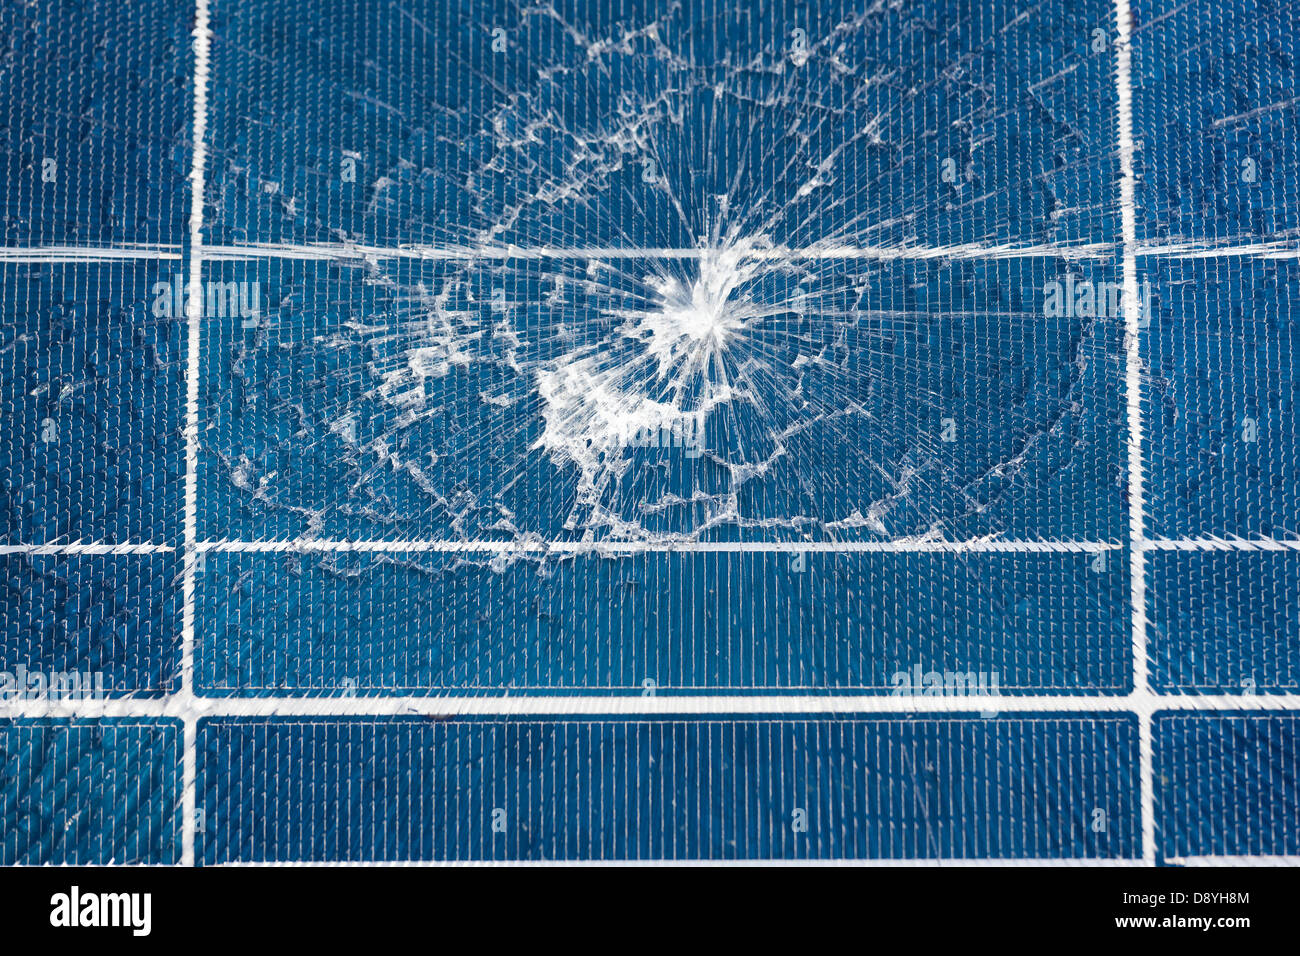 Damaged Chinese Solar Panel broken due to impact. Shattered cracked burst glass close up. Import imported from, - Stock Image